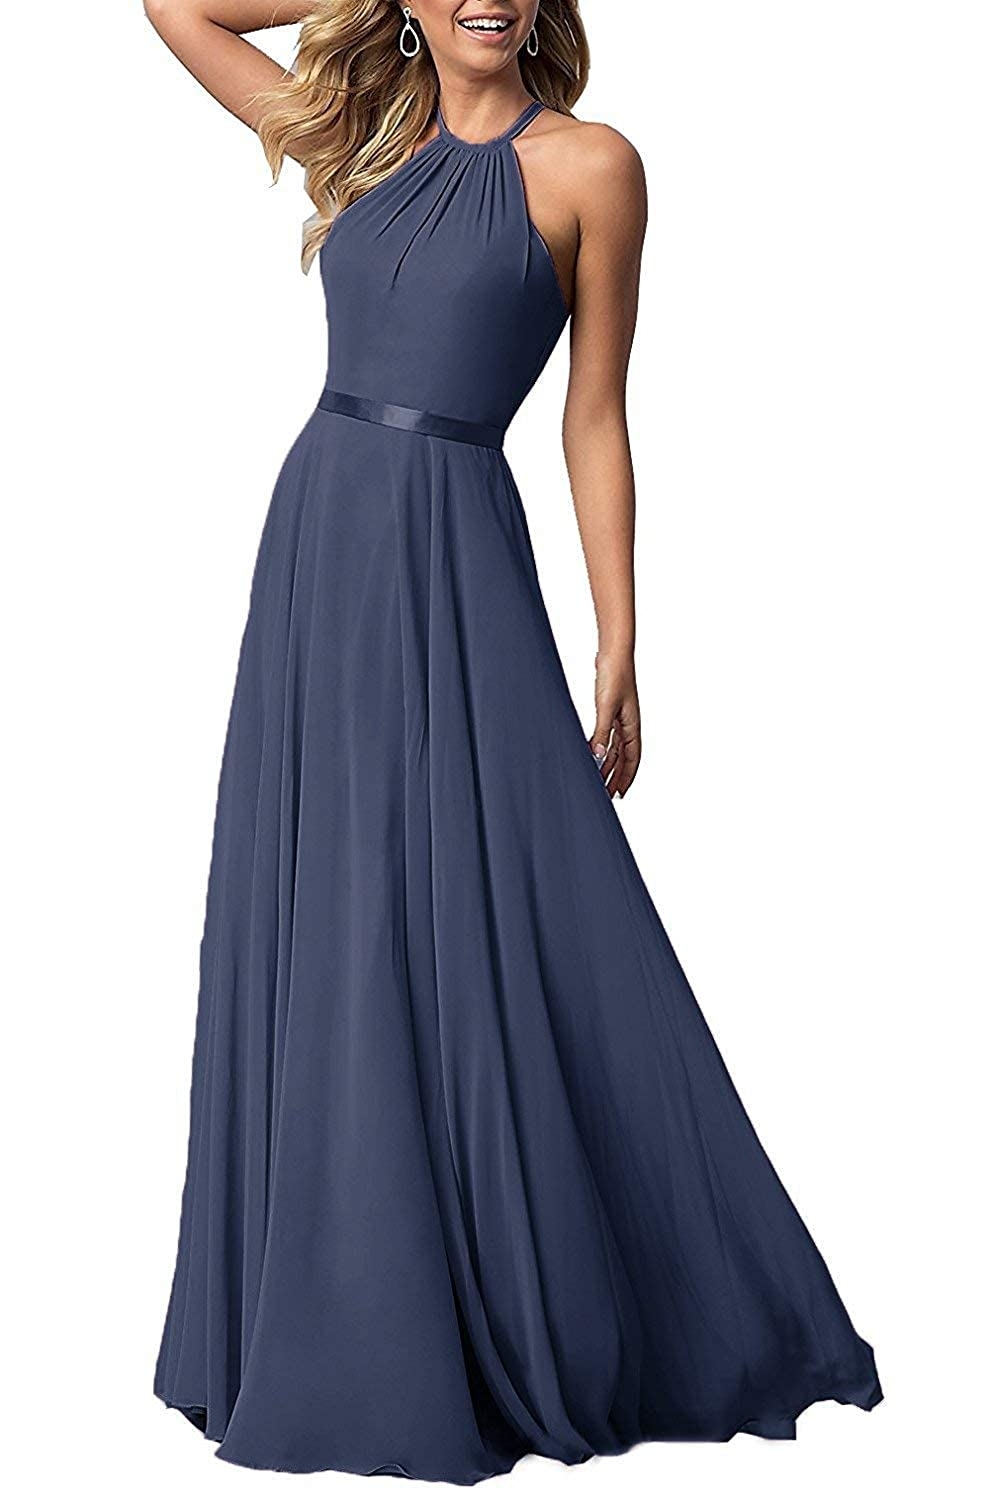 Darkslatebluee ROMOO Sexy Halter Long Bridesmaid Dresses Open Back Aline Formal Evening Party Gowns